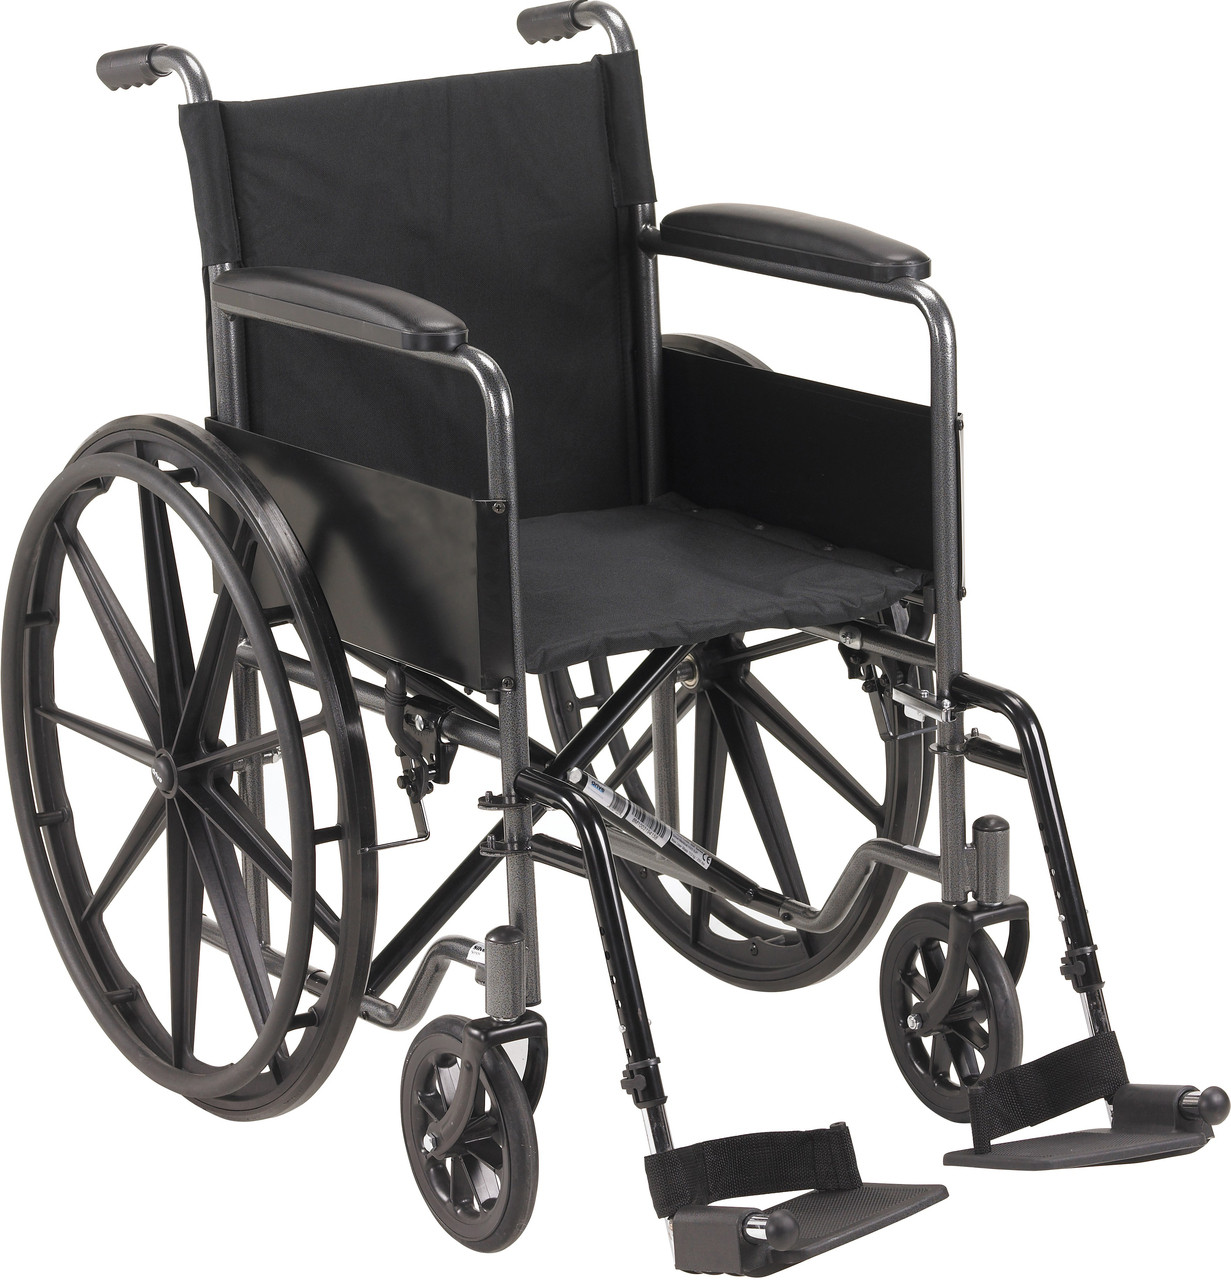 Wheelchair Rentals | K1 Standard Wheelchairs for Rent